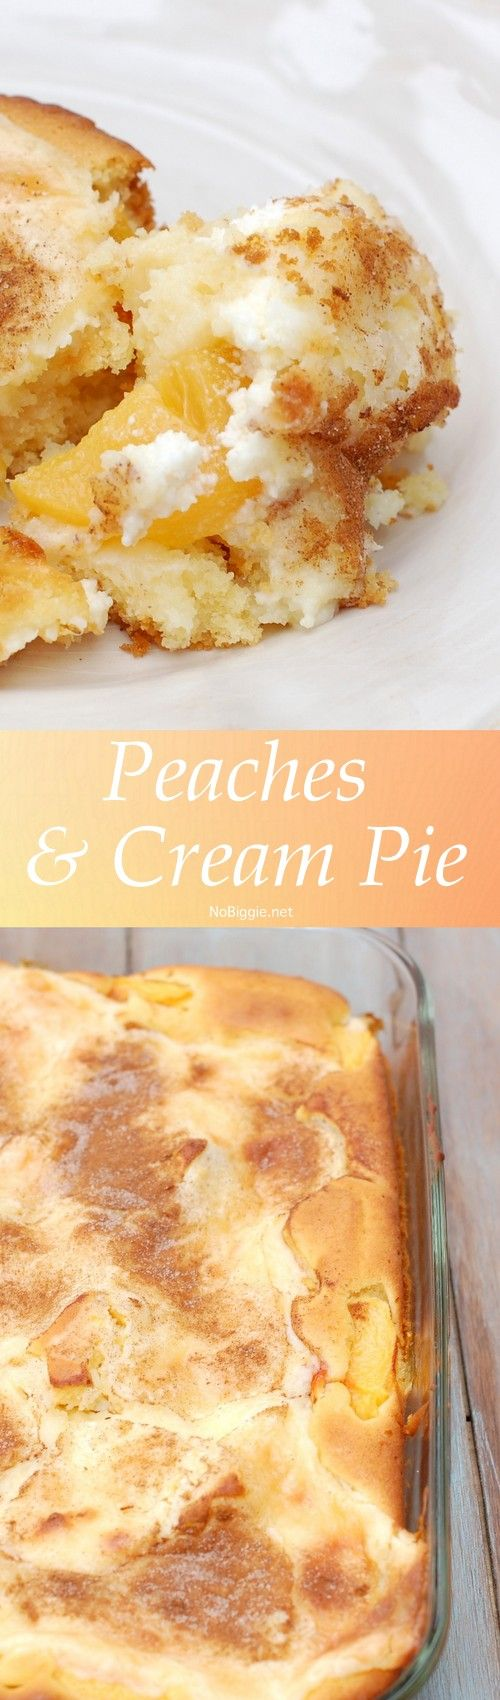 peaches and cream pie | NoBiggie.net